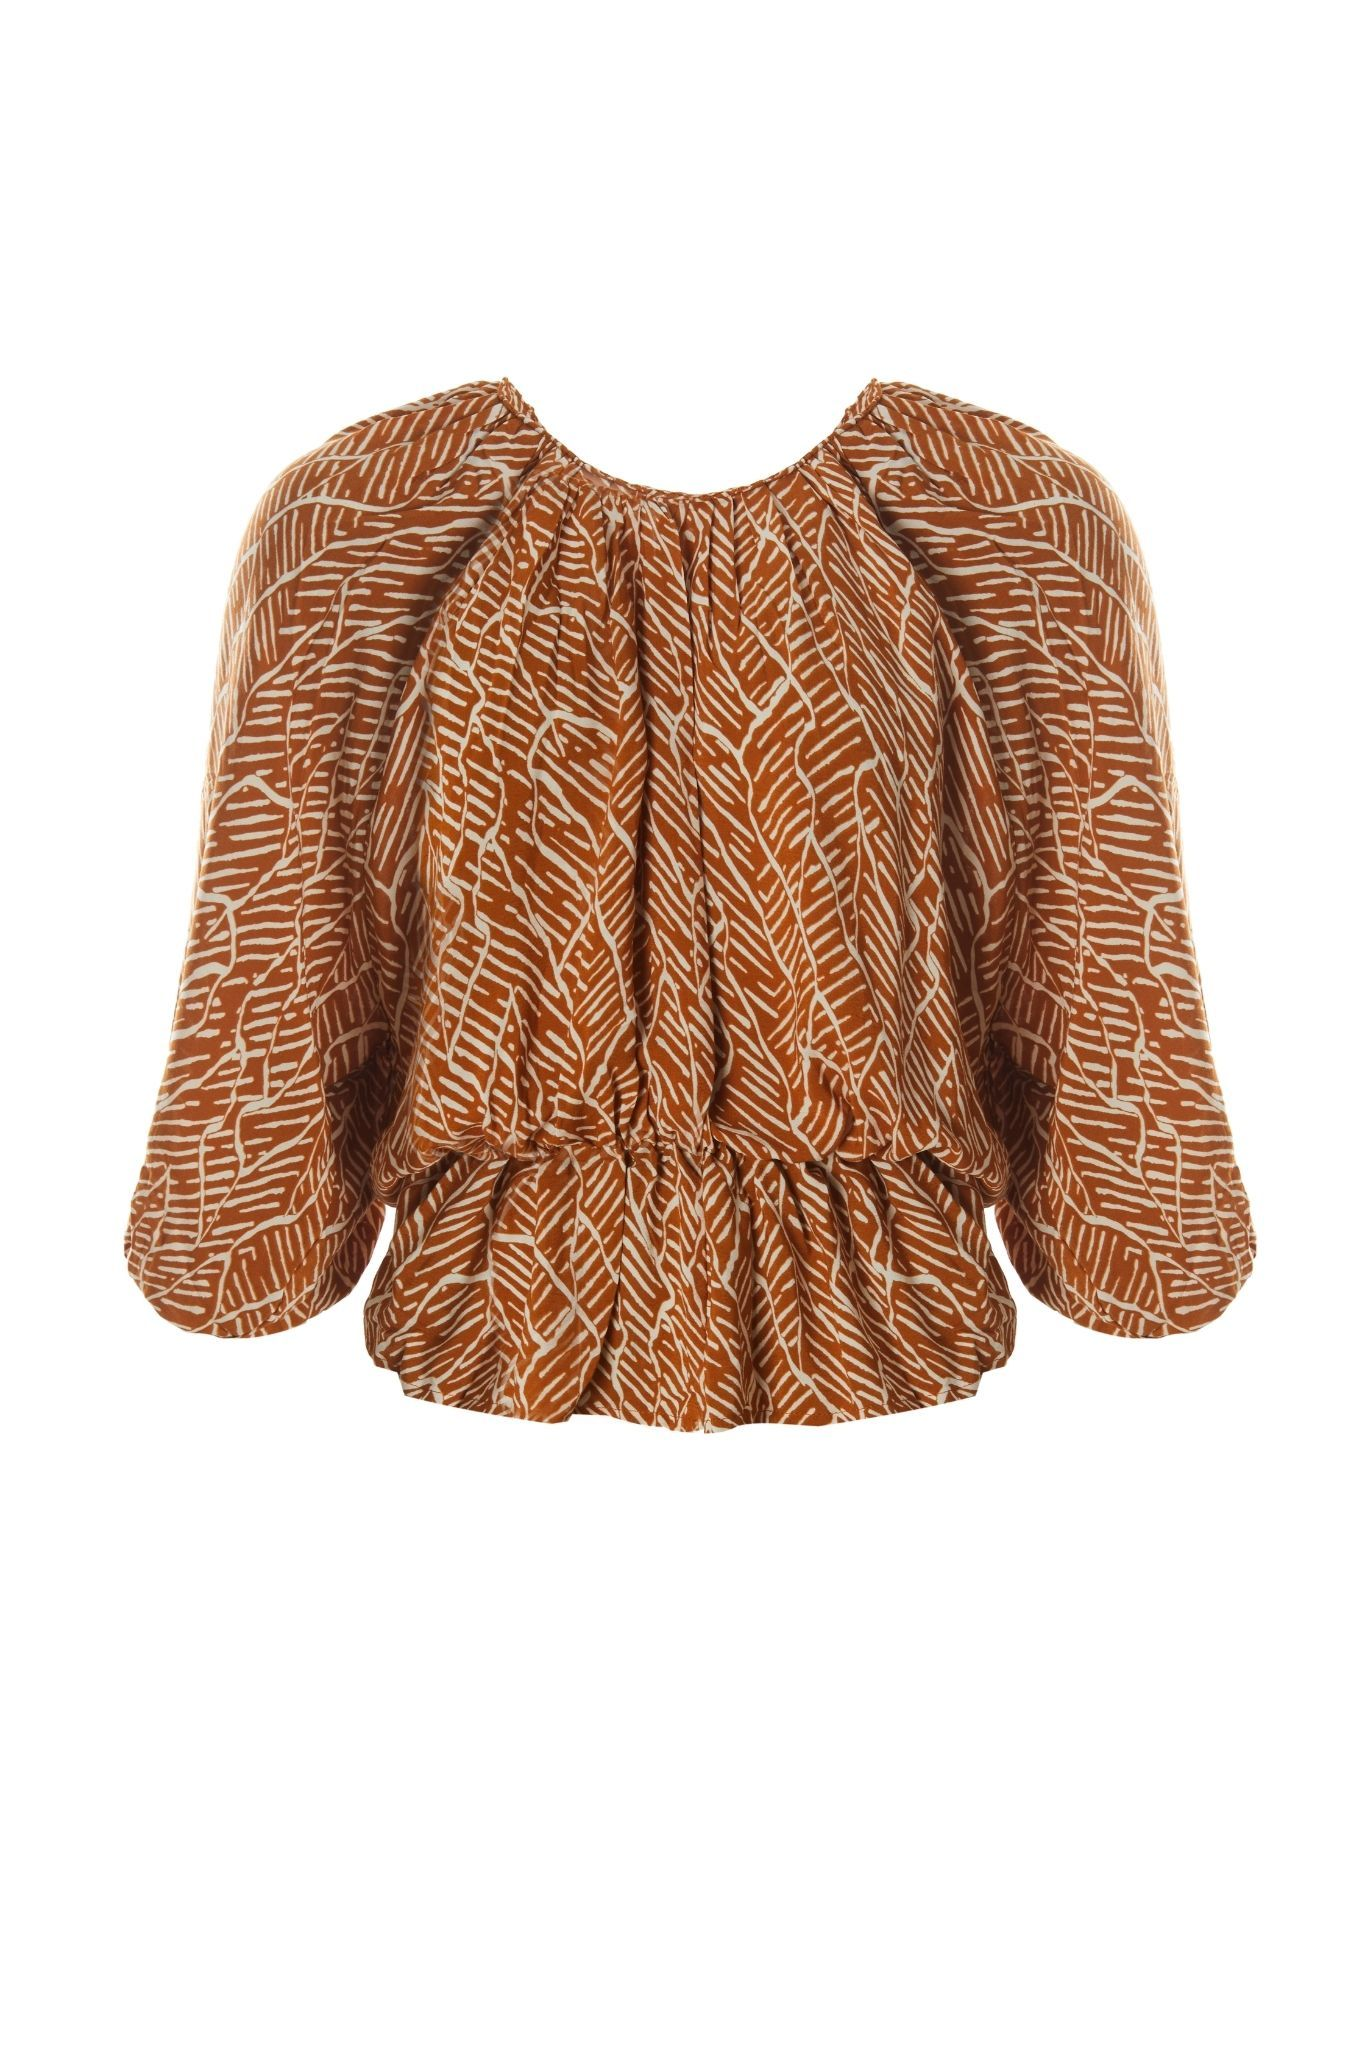 Yali Top - Tribal Brown